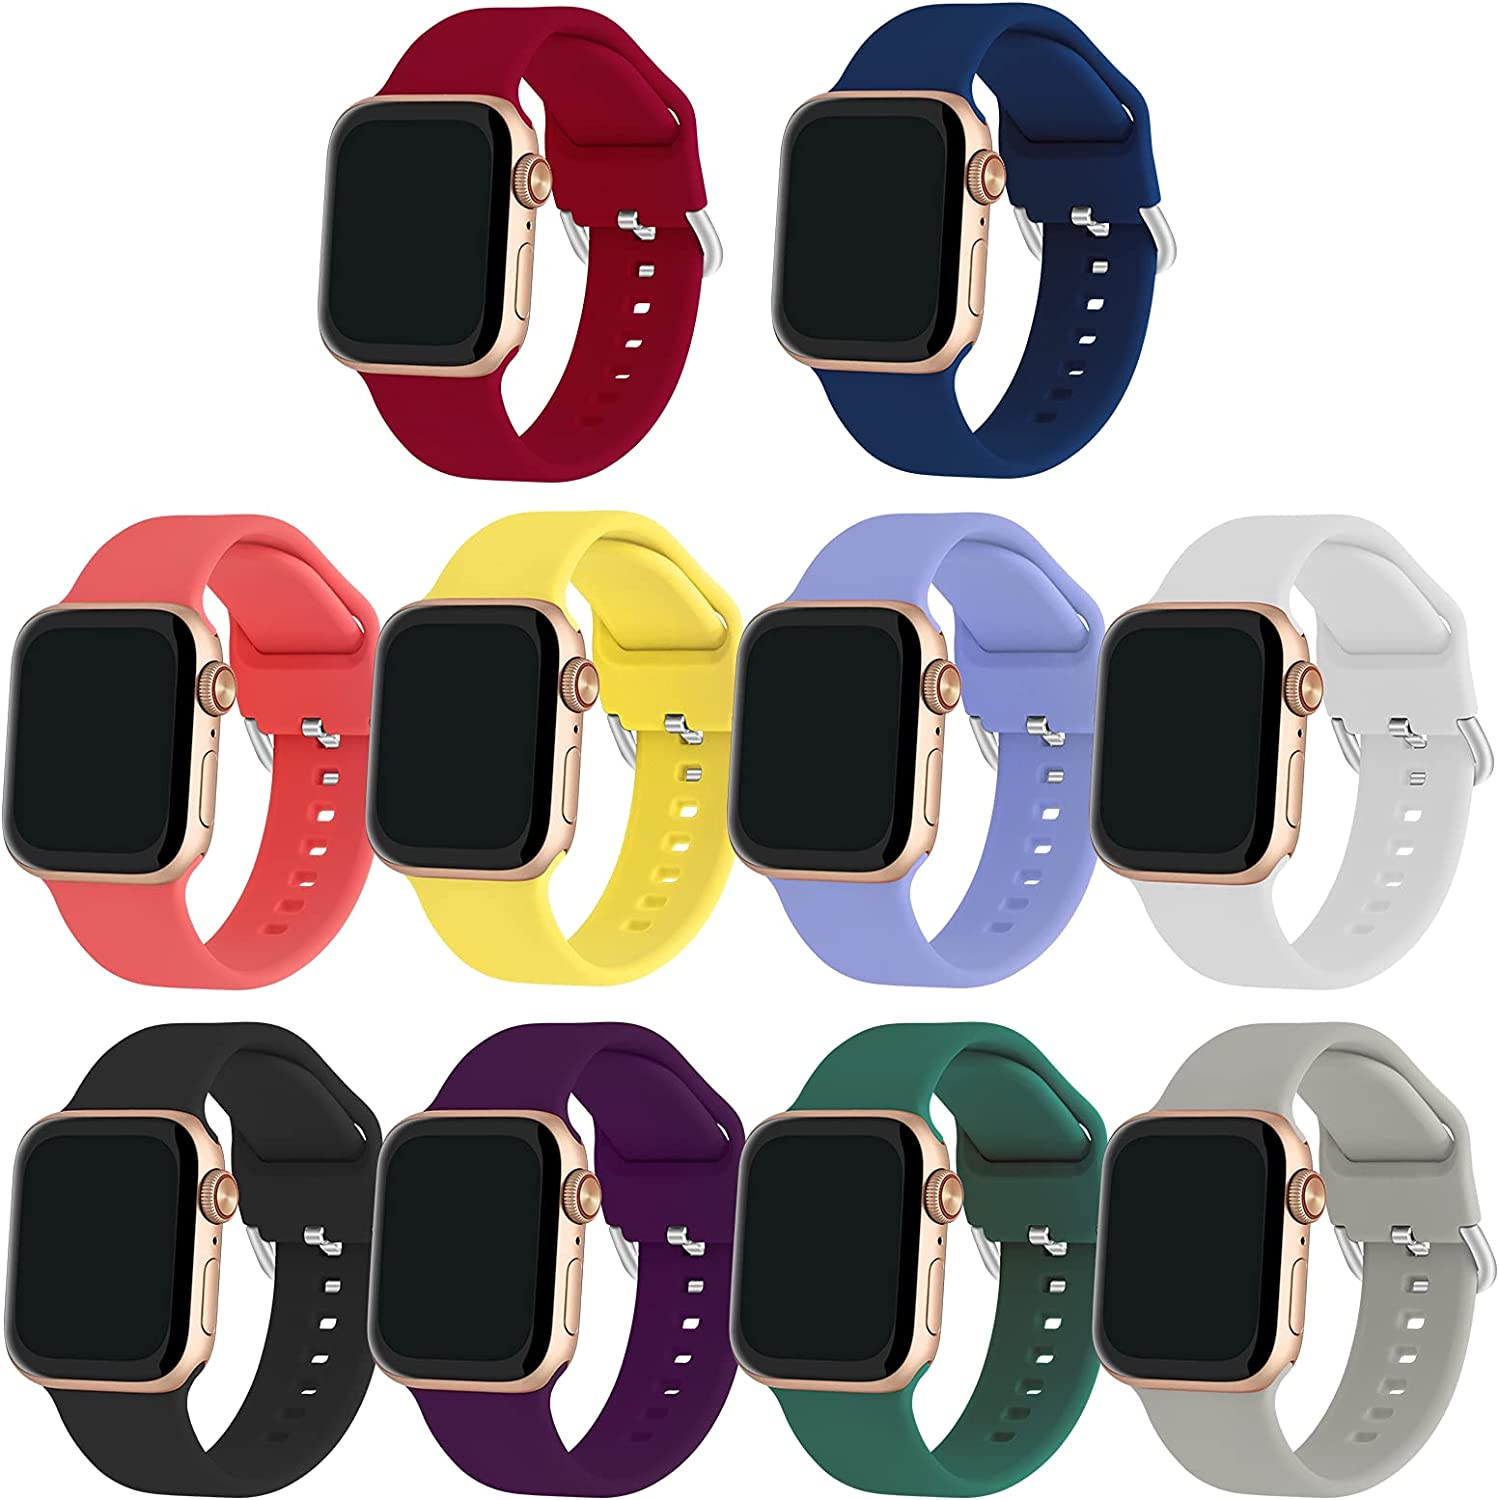 SolorSubring Compatible with Apple Watch Bands 38mm 40mm 42mm 44mm Women Men,10-Pack Durable Silicone Replacement Strap for iWatch Series 6/SE/5/4/3/2/1 with Silver Buckle